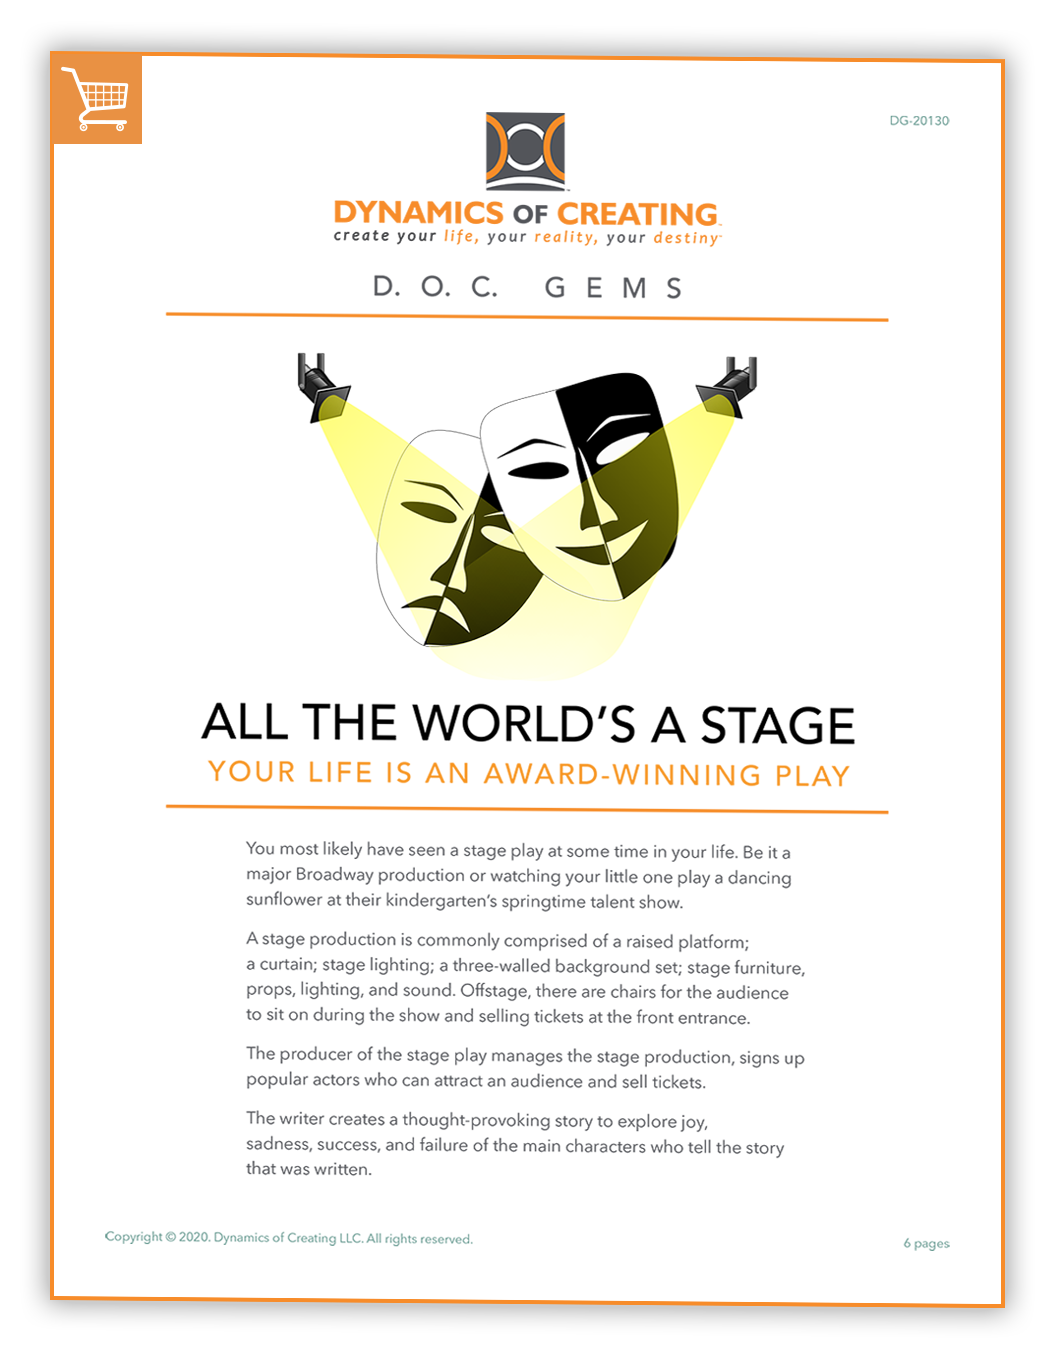 DG-20130_DOC-GEMS_All the Worlds a Stage_ProdView